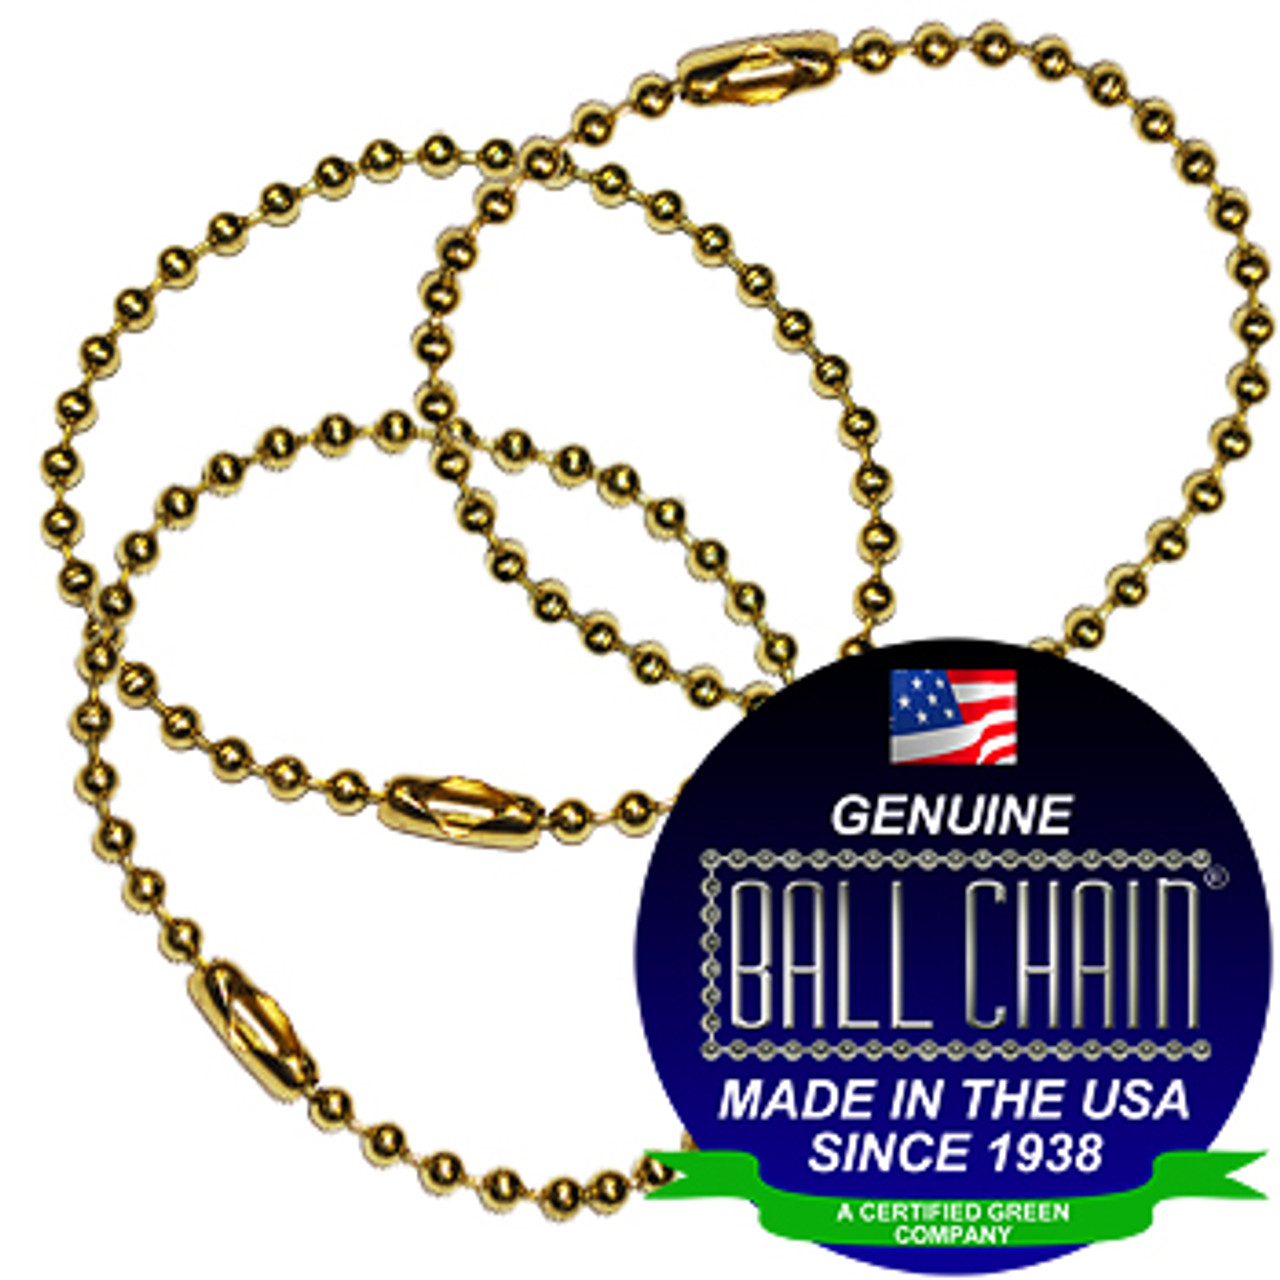 #3 Yellow Brass Key Chains - 4 Inch Length